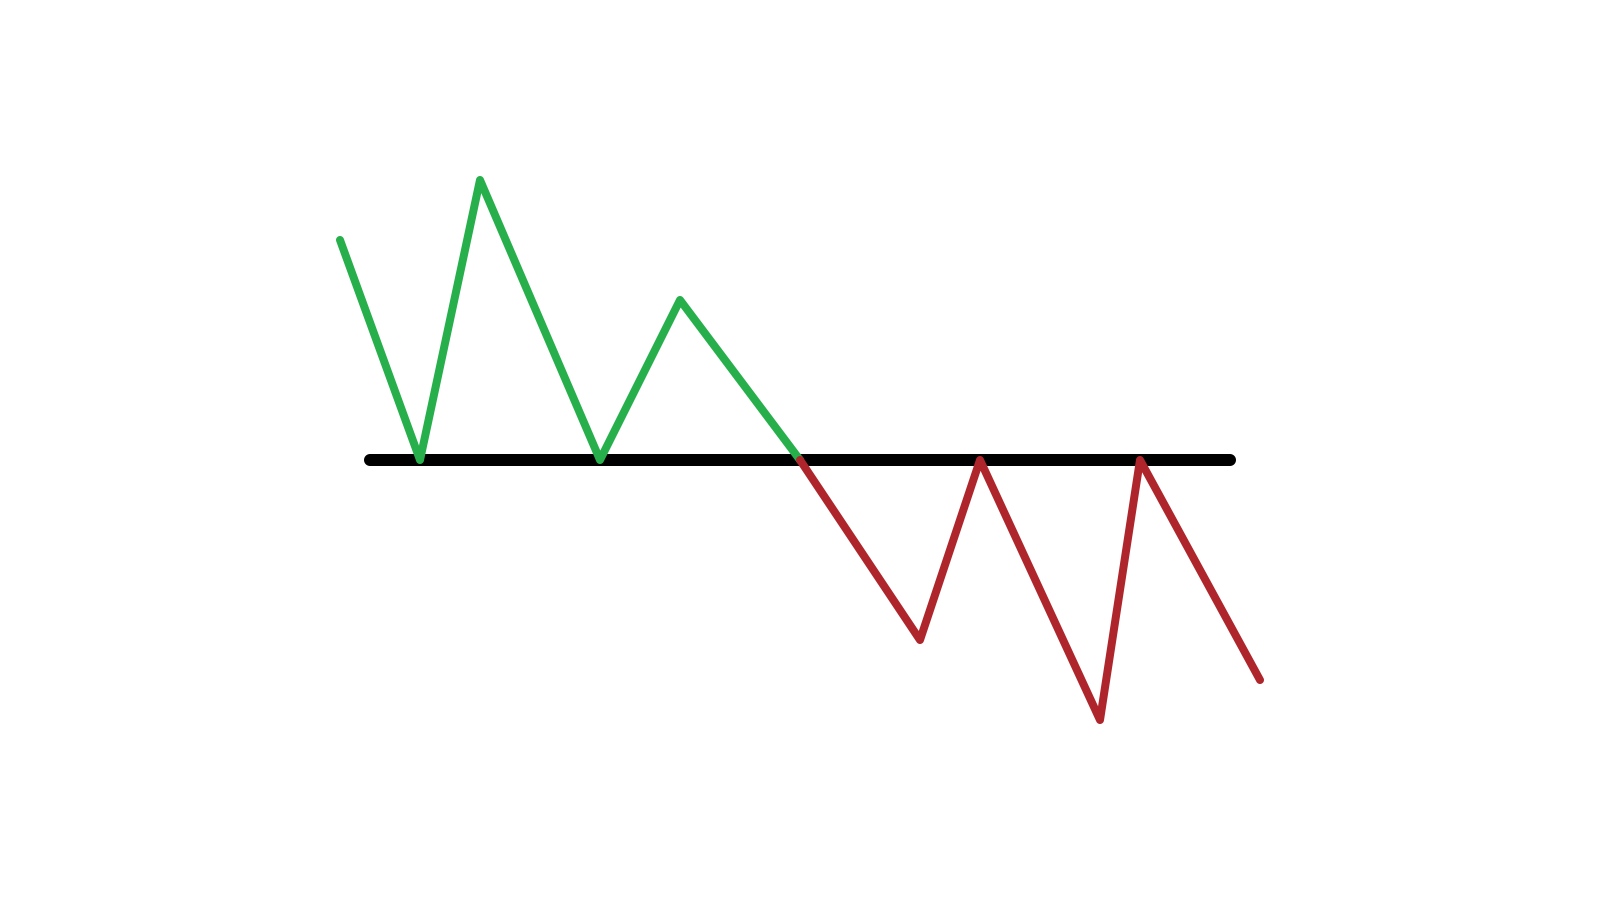 Guide to Identifying When Price Wants to Breakout from Support/Resistance on Olymp Trade and the Actions to Take